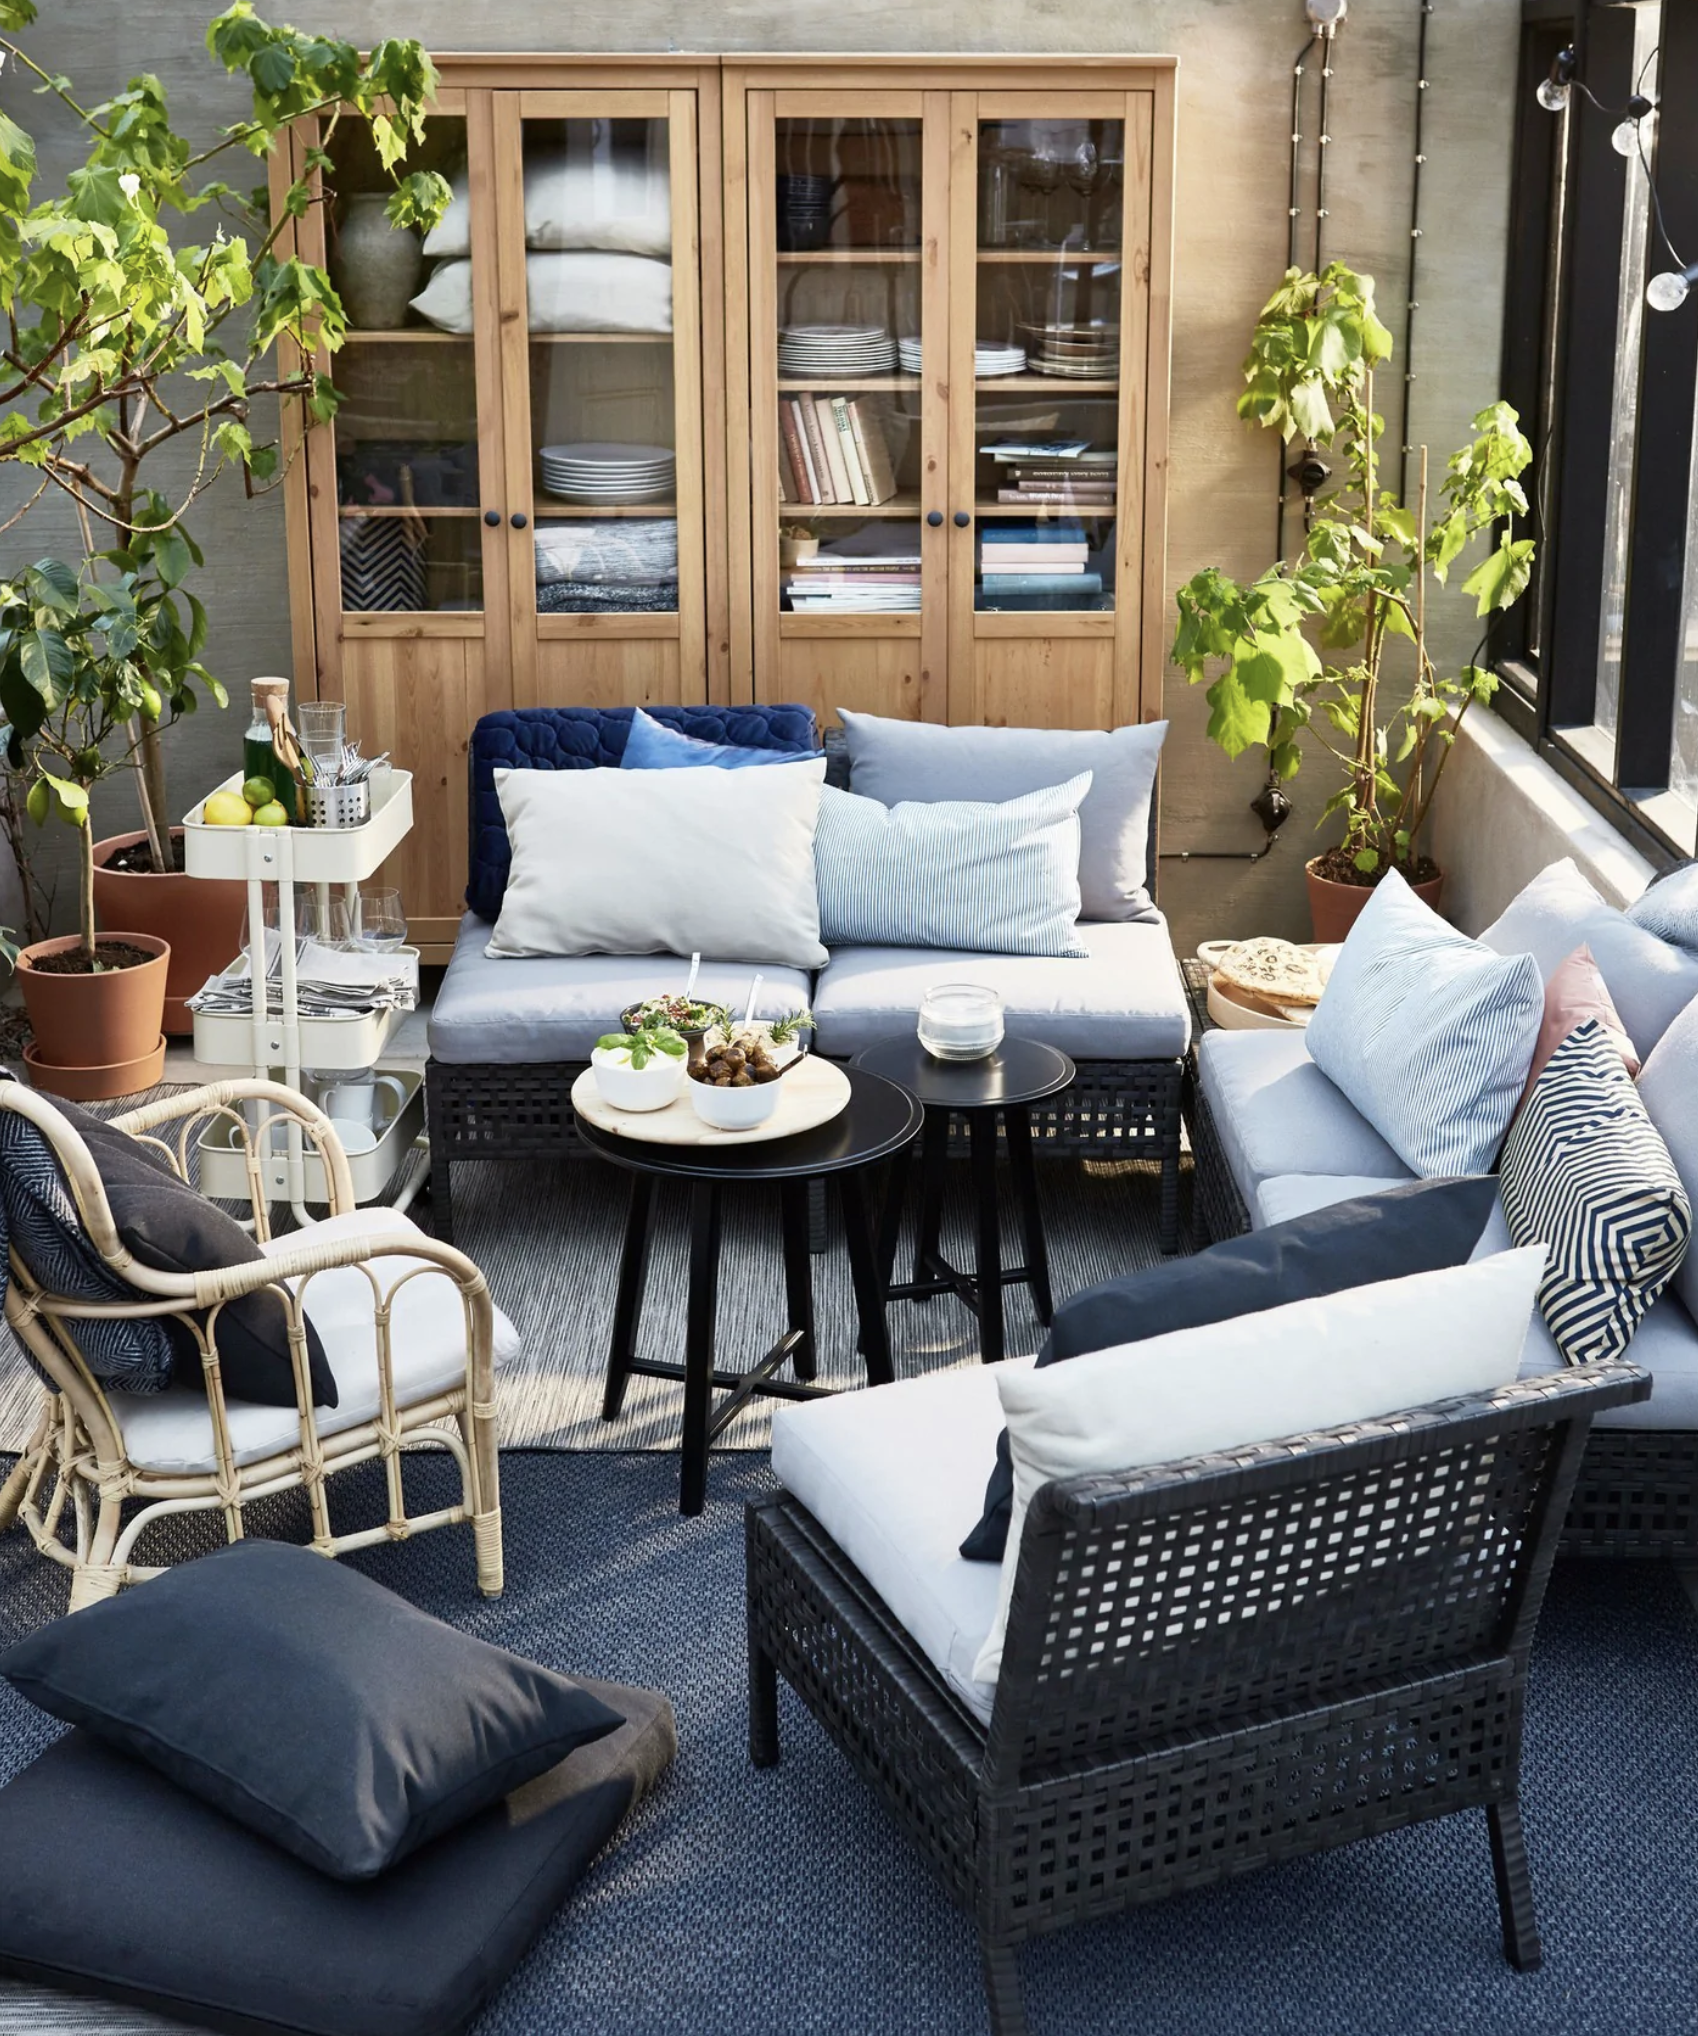 Get 20 Off Ikea Garden Furniture With This Easy Hack Ikea Garden Furniture Outdoor Living Room Living Room Inspiration